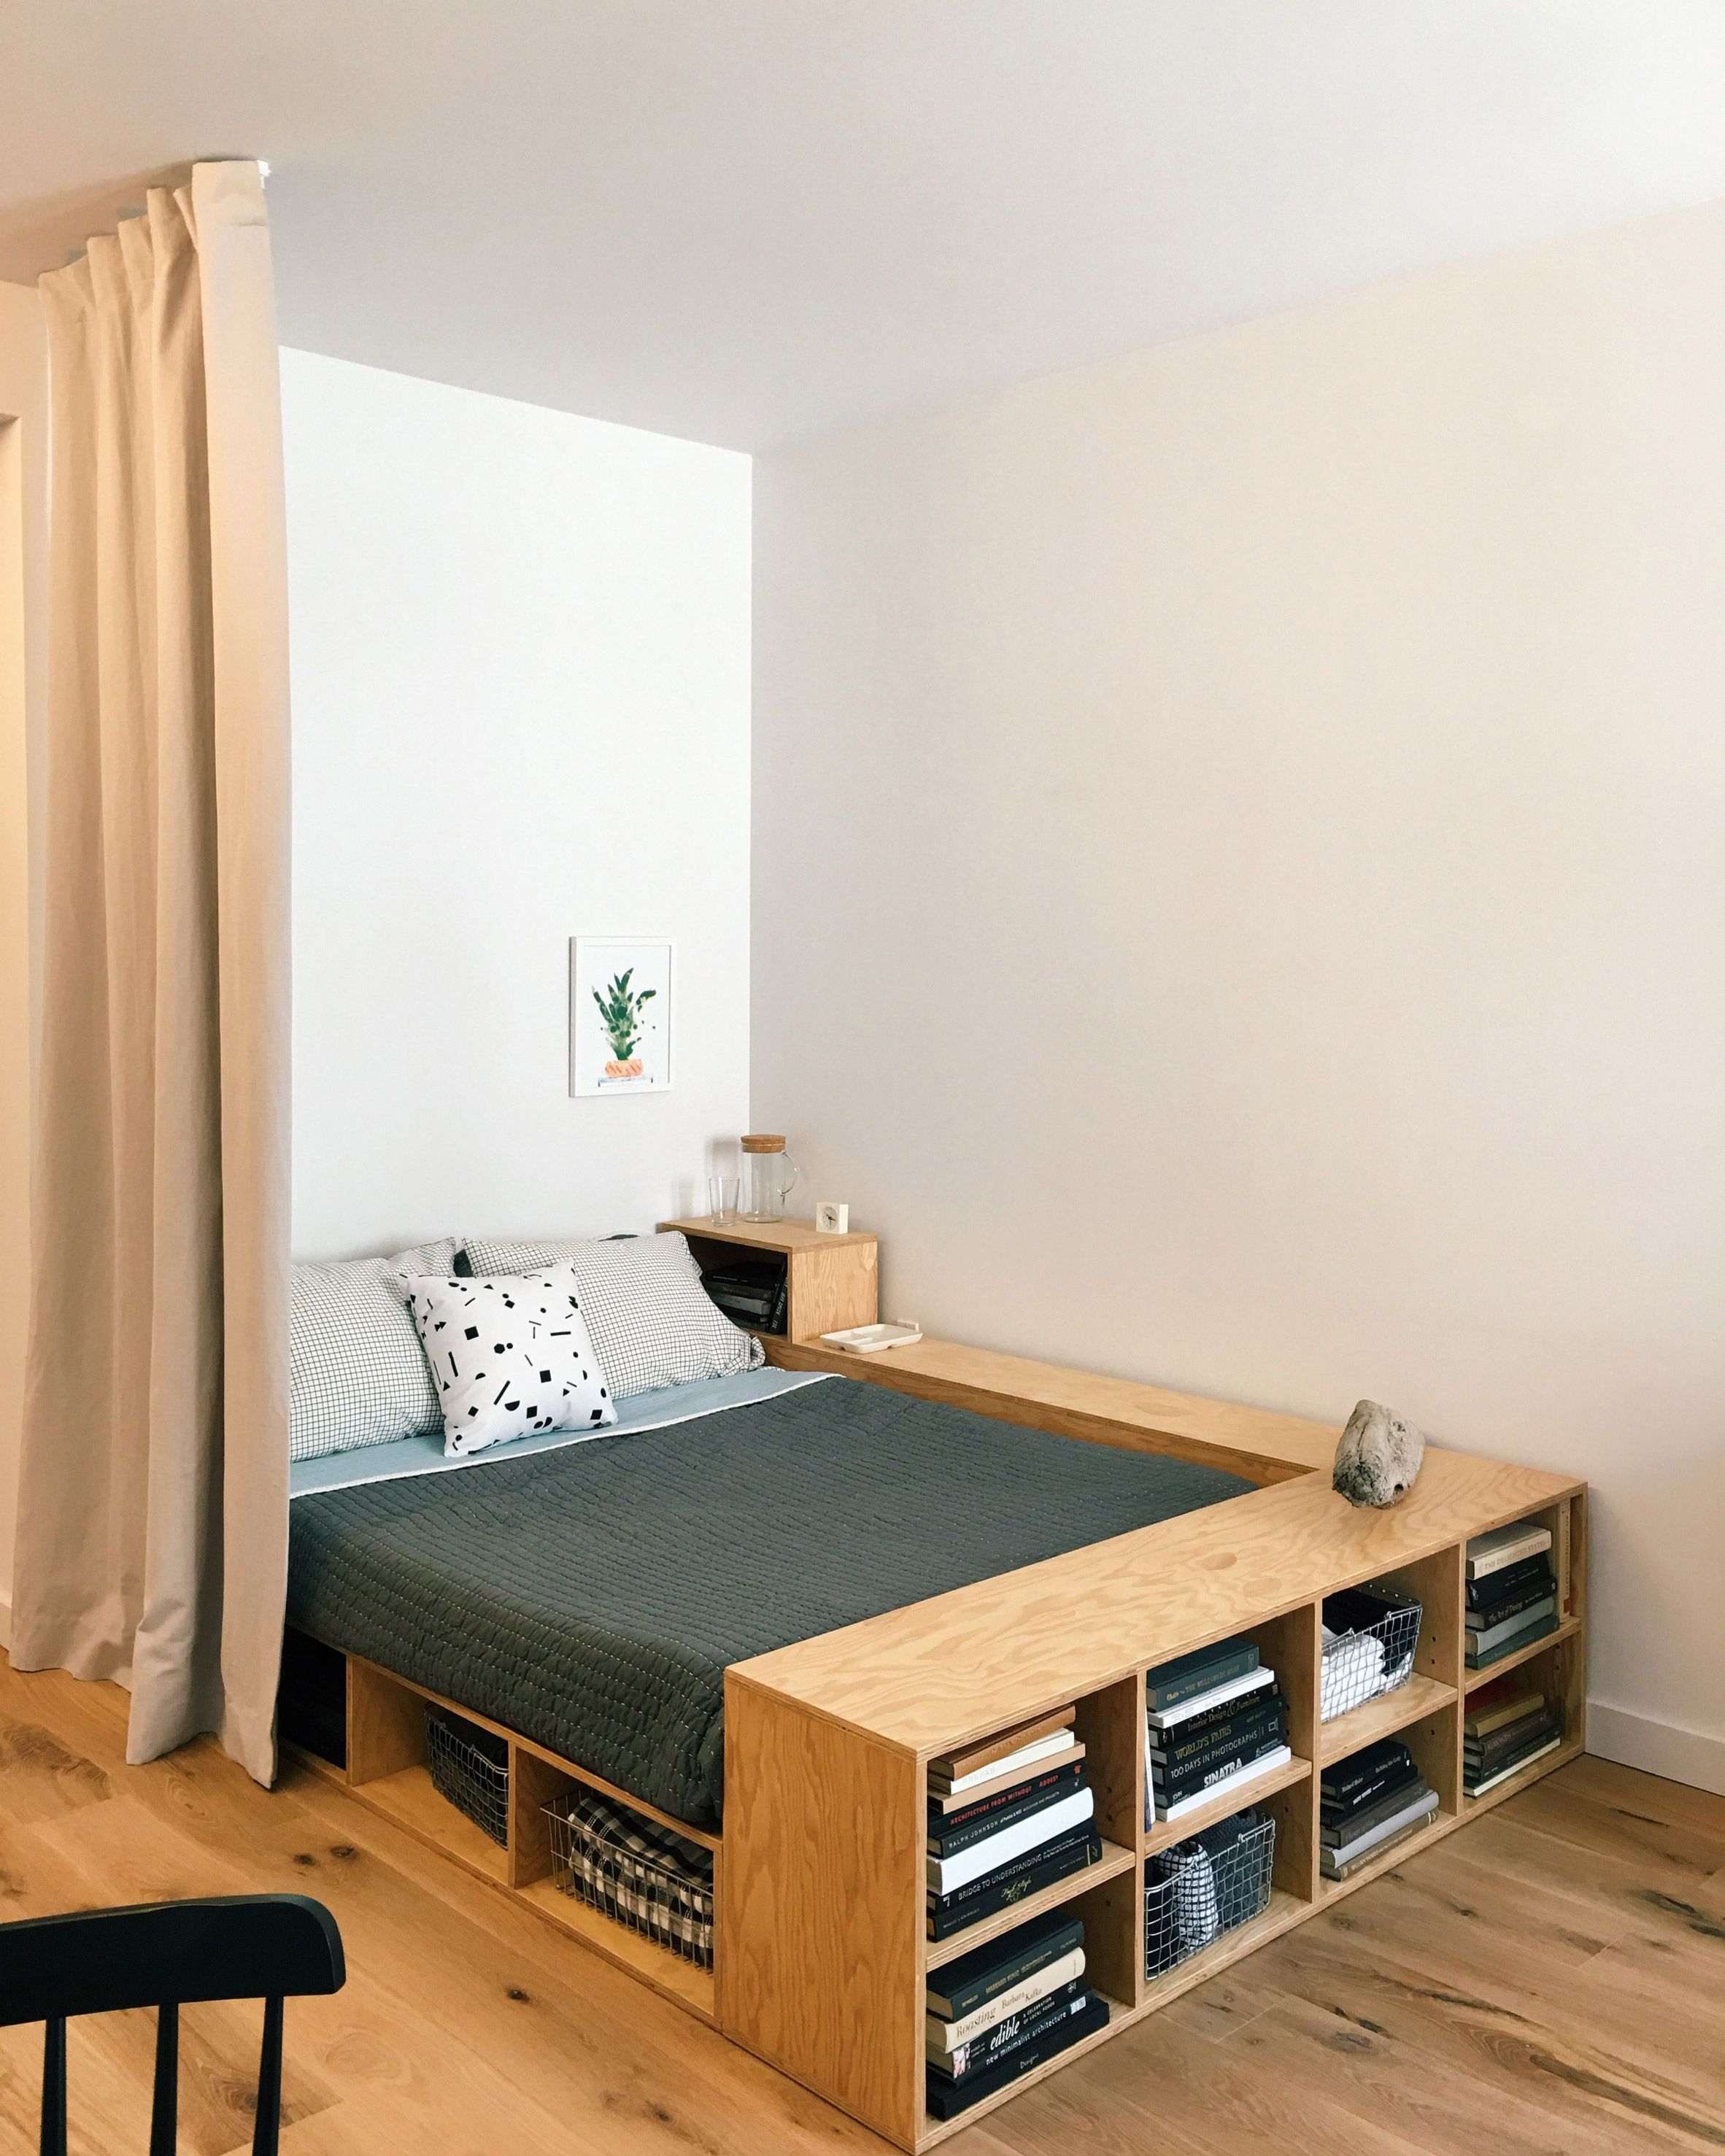 Simple Yet Functional Bed Love The Clever Storage Space Designed